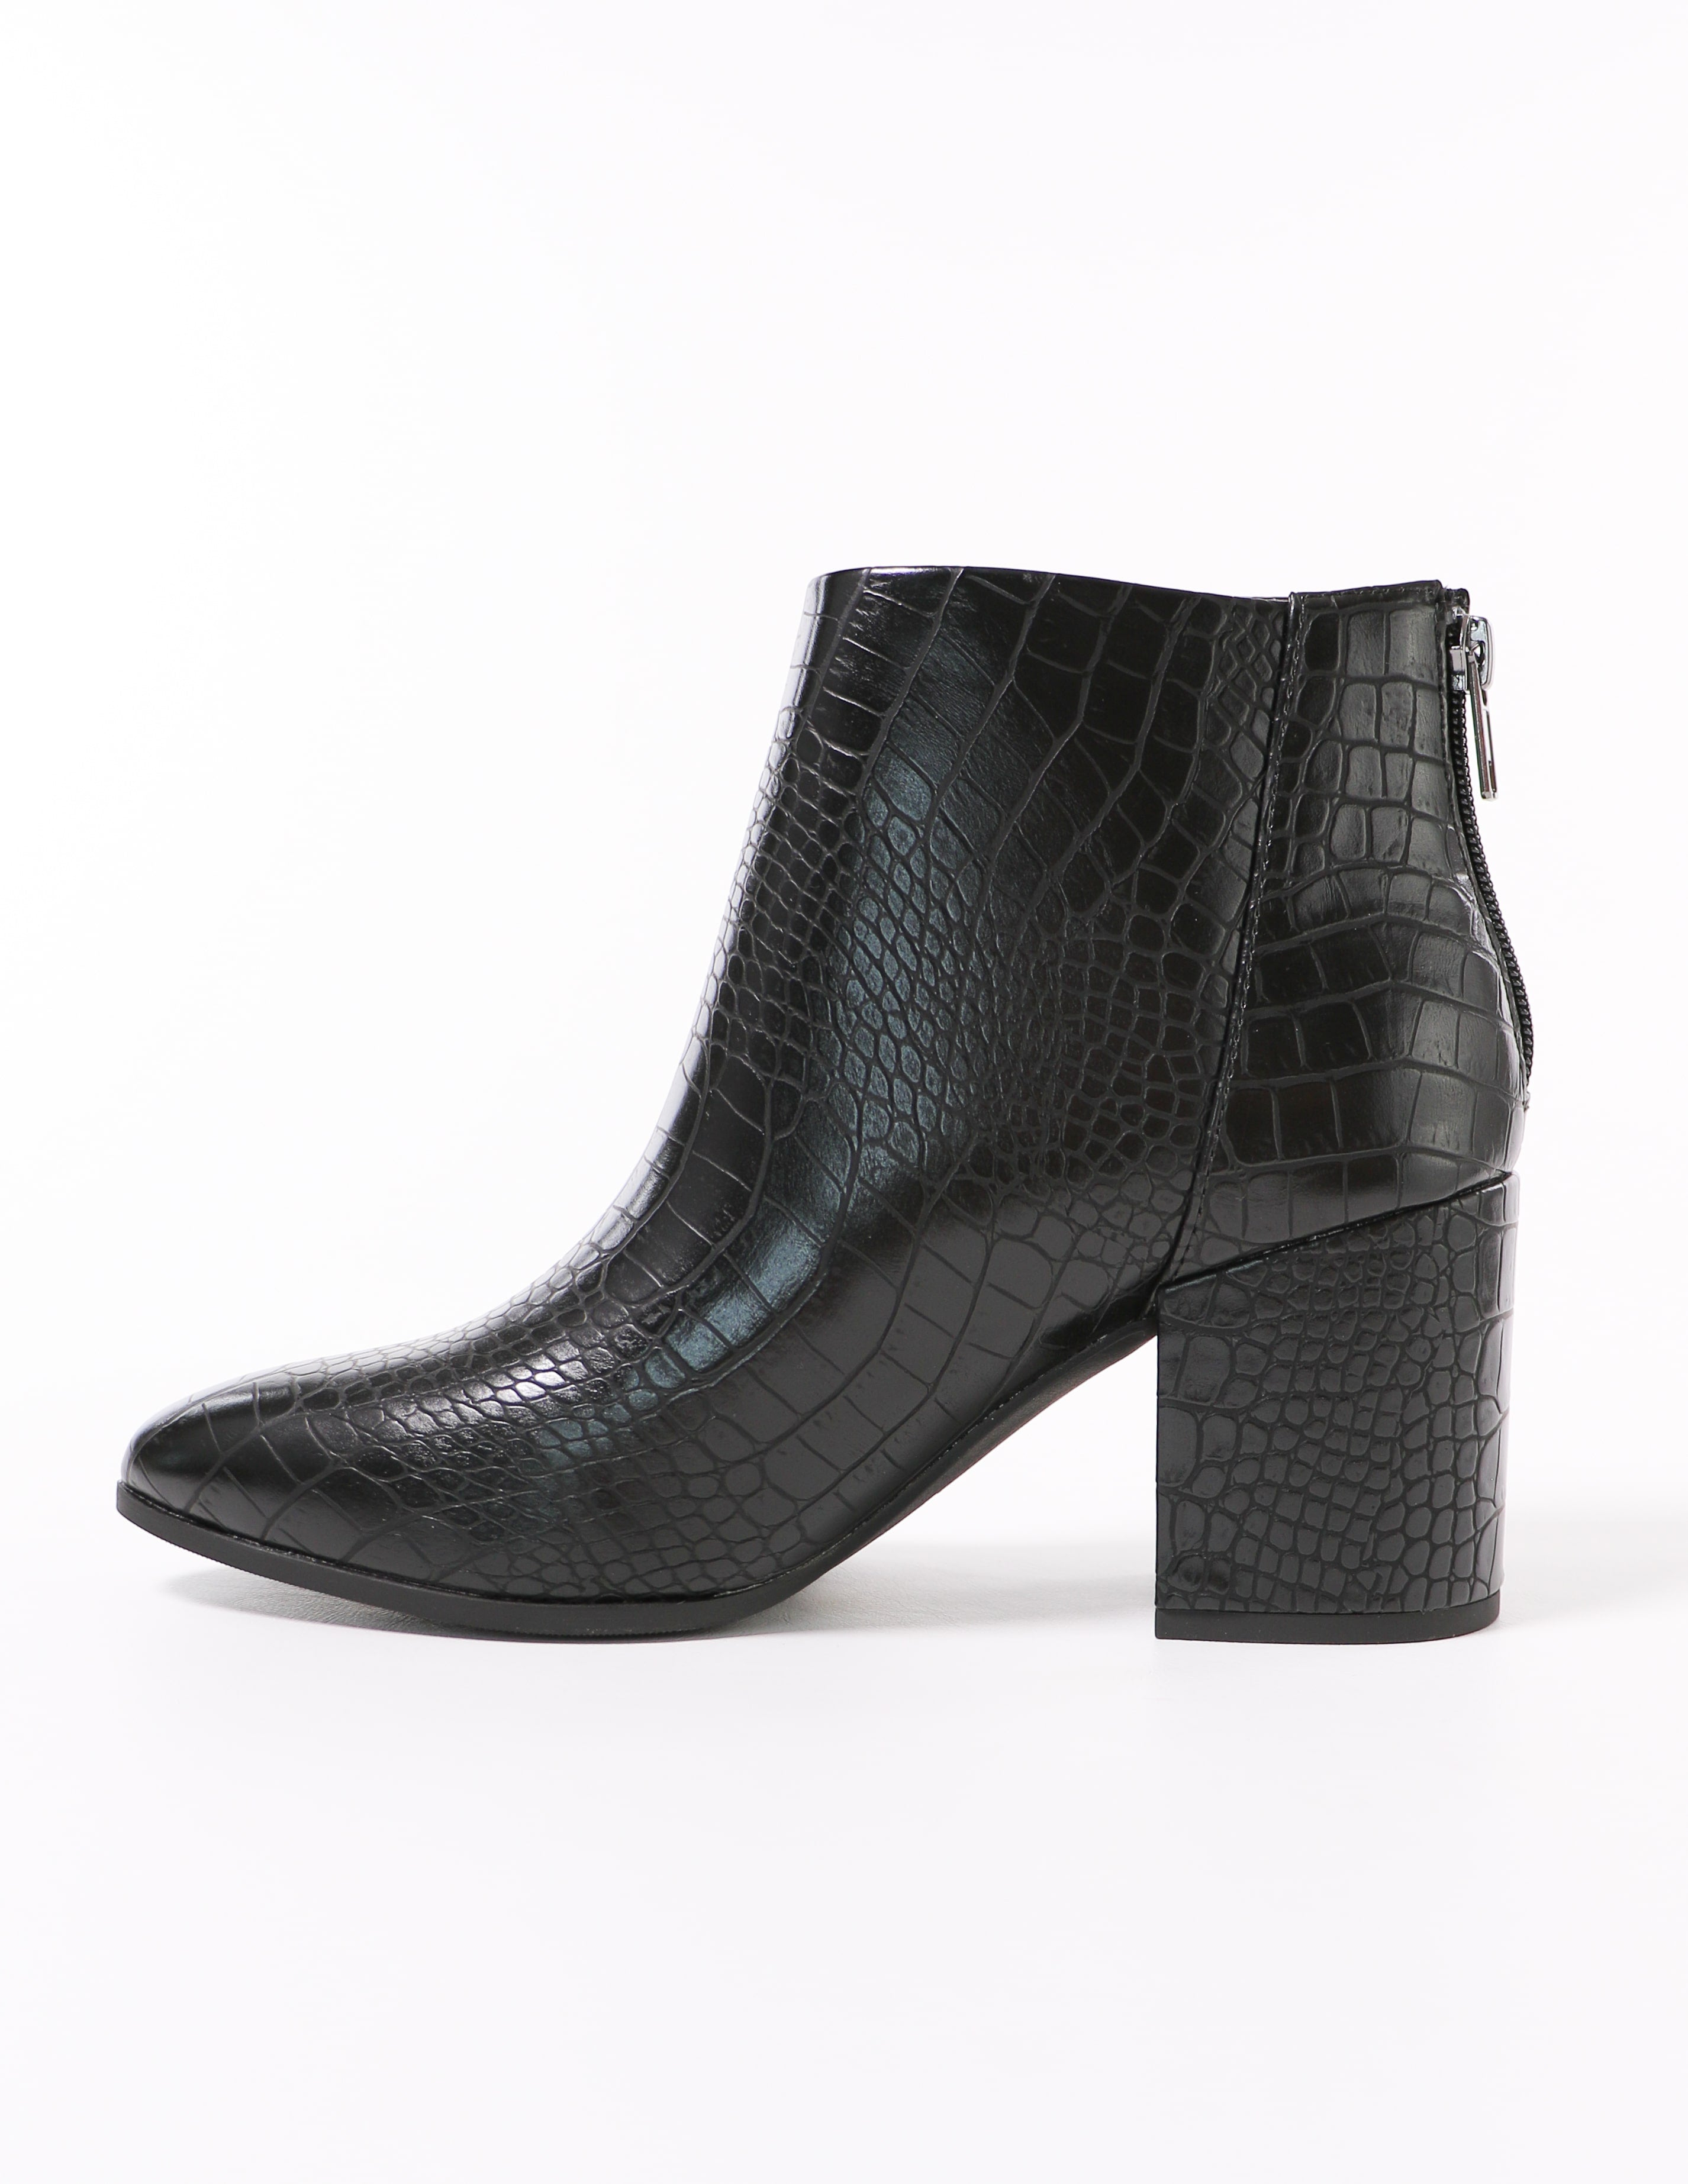 side of the croc block ankle boot black heel on white background